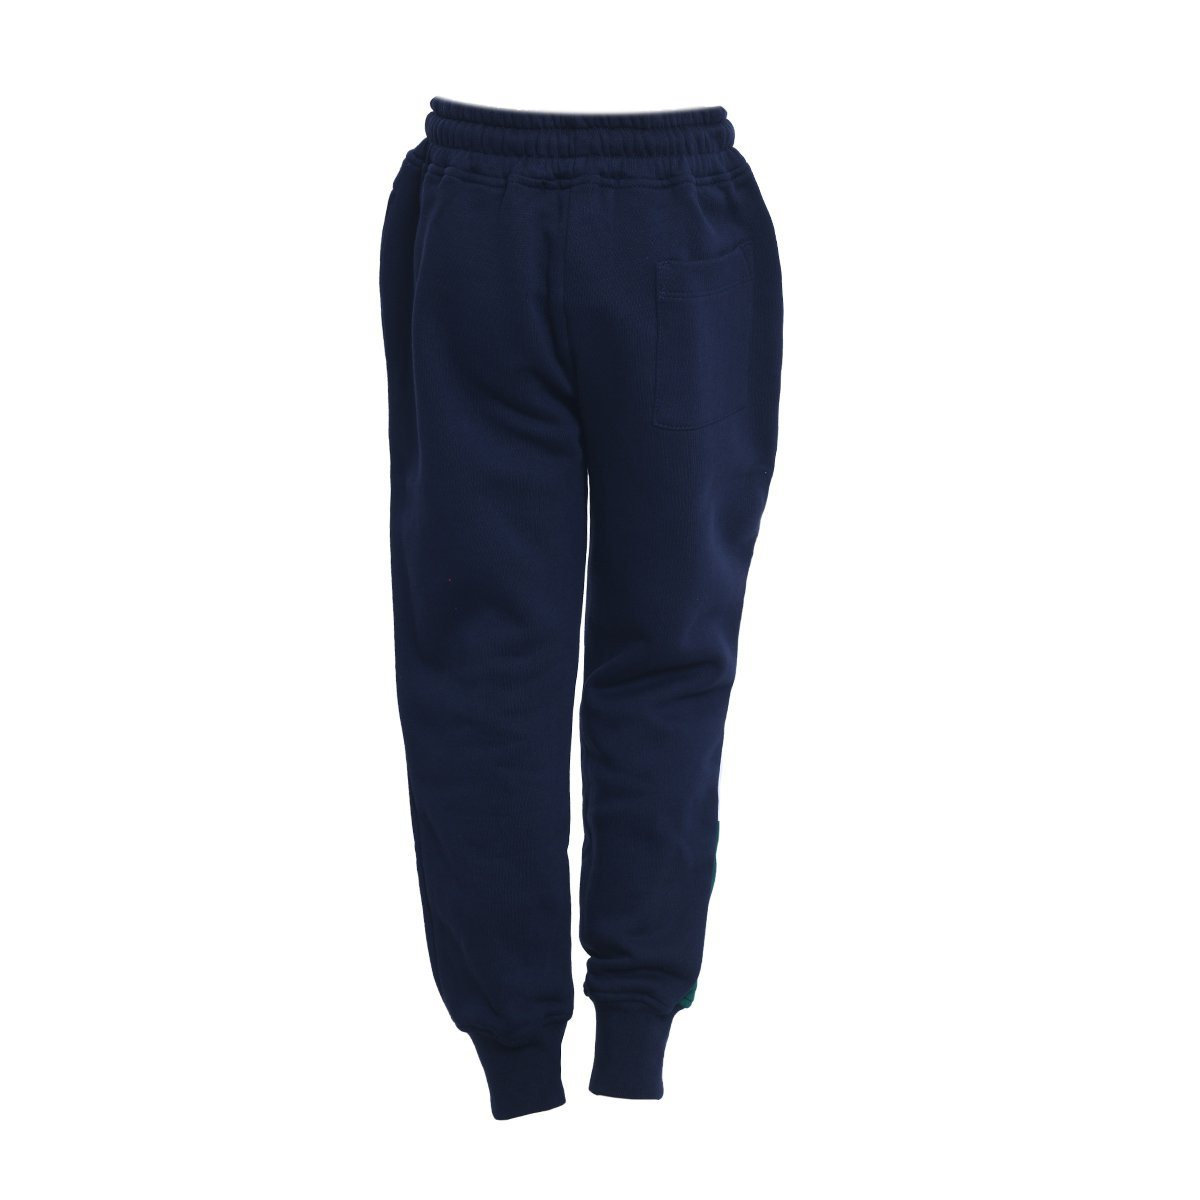 MSGM Fleece Pants For Boys, Blue